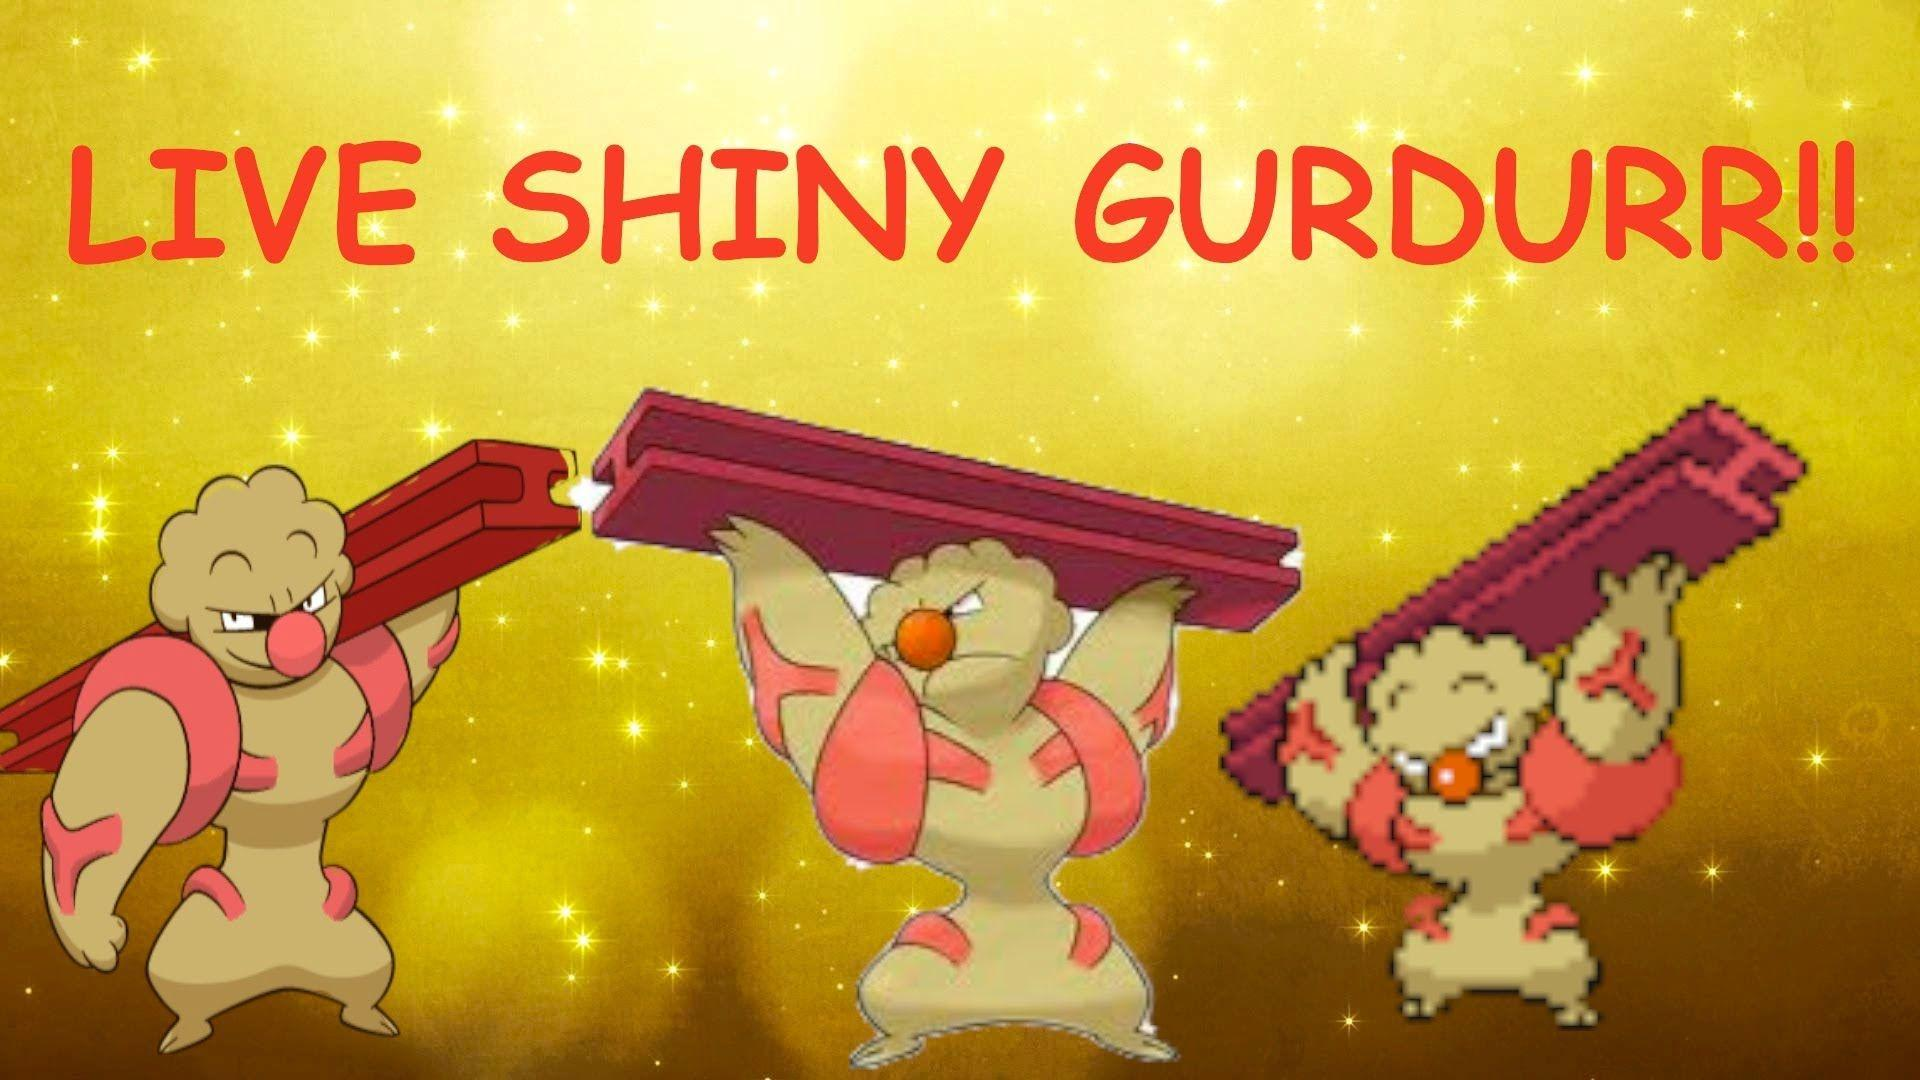 First LIVE On YouTube!!!] Shiny Gurdurr in Pokemon Y after 1,704